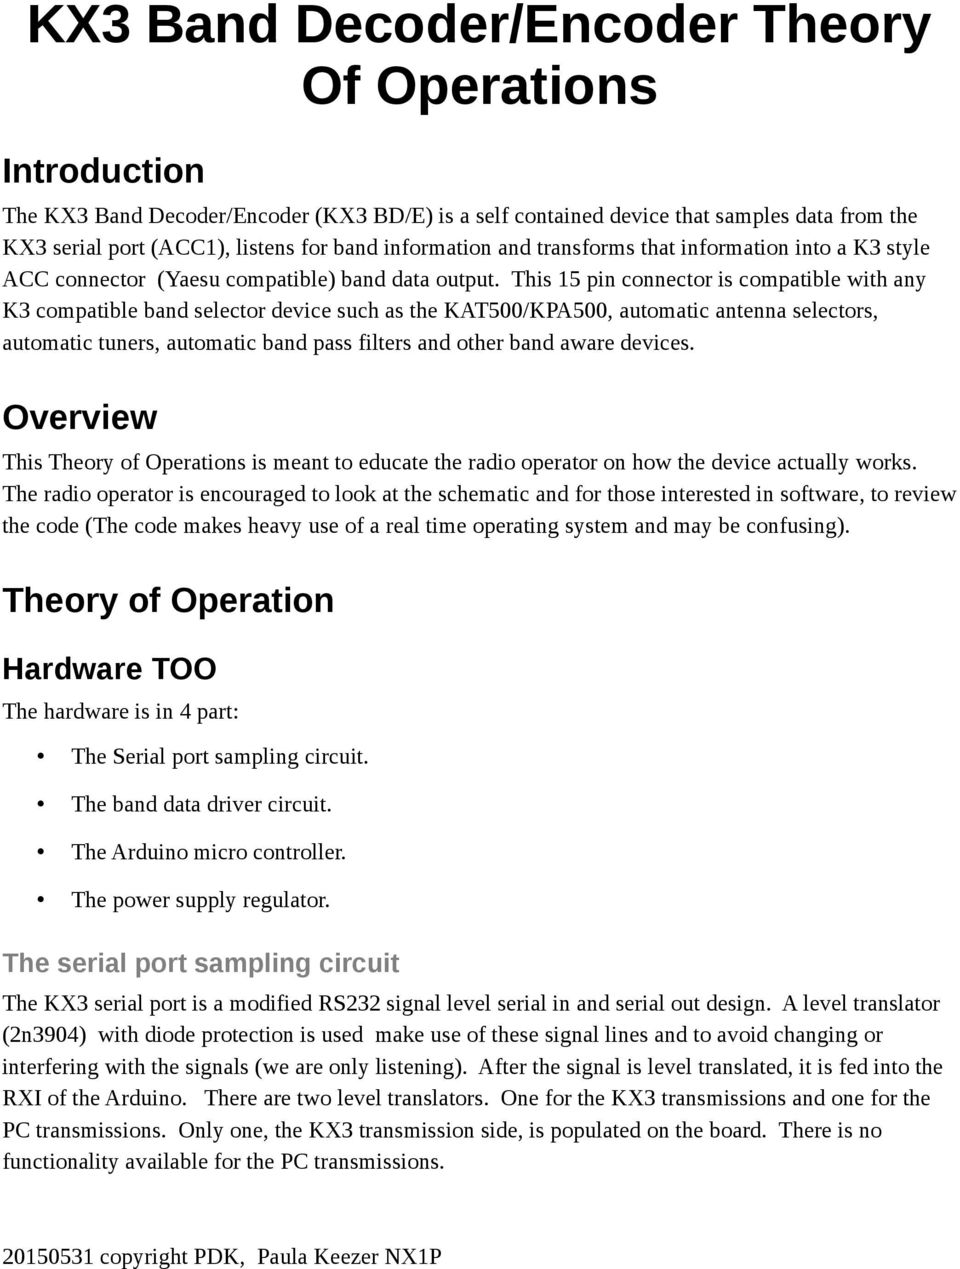 KX3 Band Decoder/Encoder Theory Of Operations - PDF Free ... Kx Schematic on